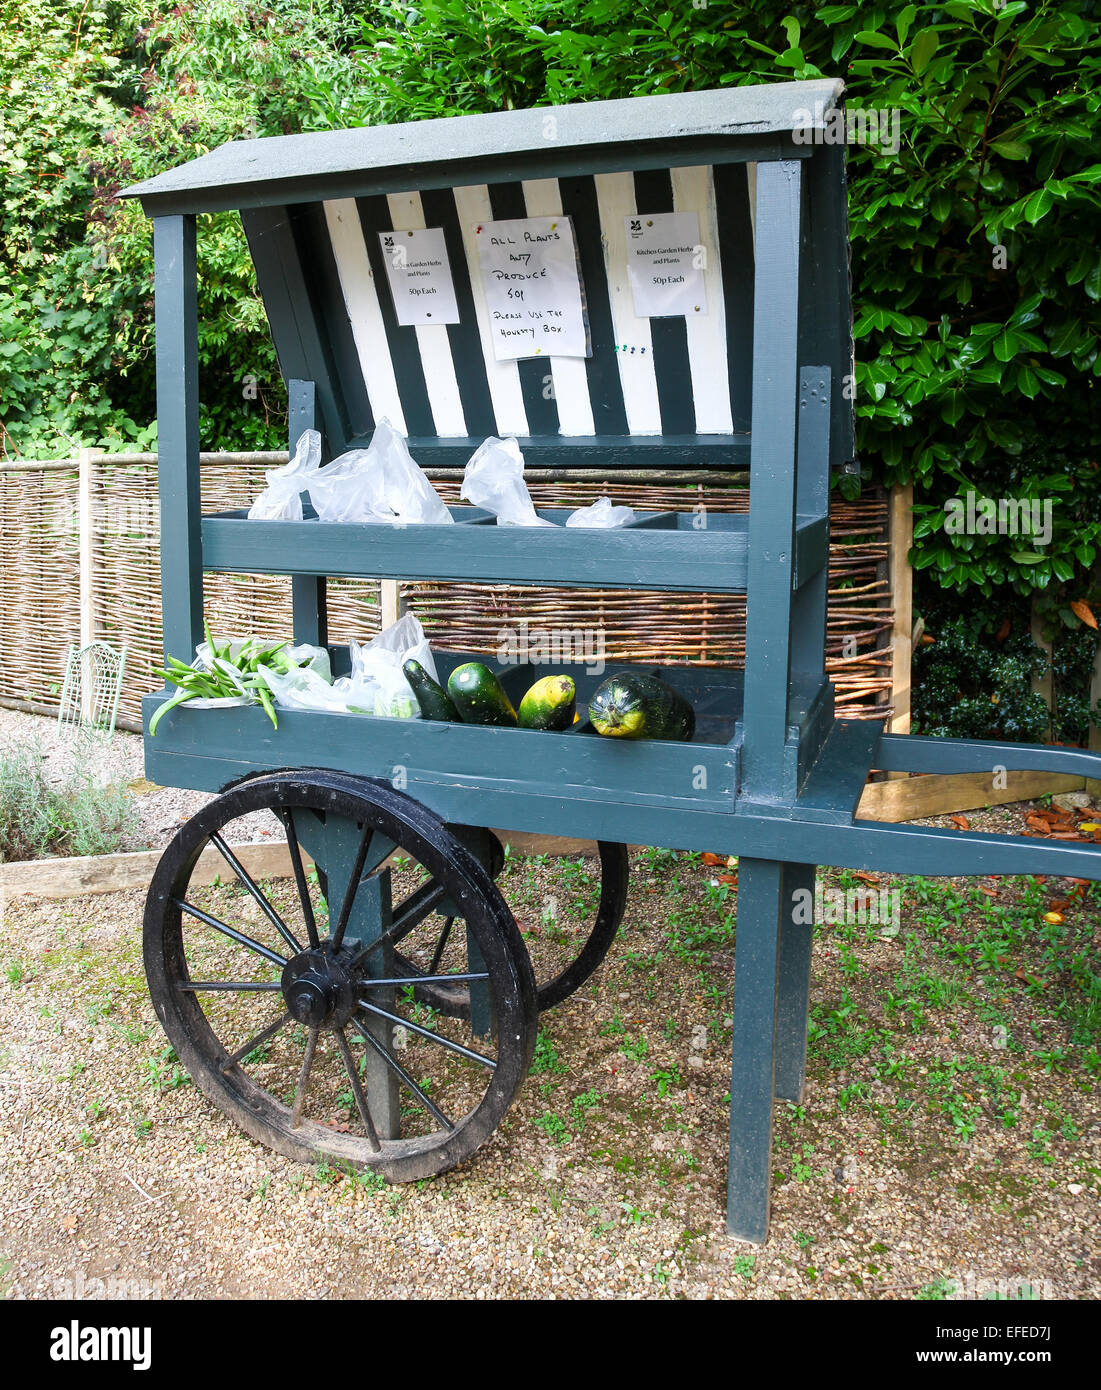 A barrow selling home grown or produced produce of fruit and vegetables at Biddulph grange Stoke on Trent Staffordshire - Stock Image